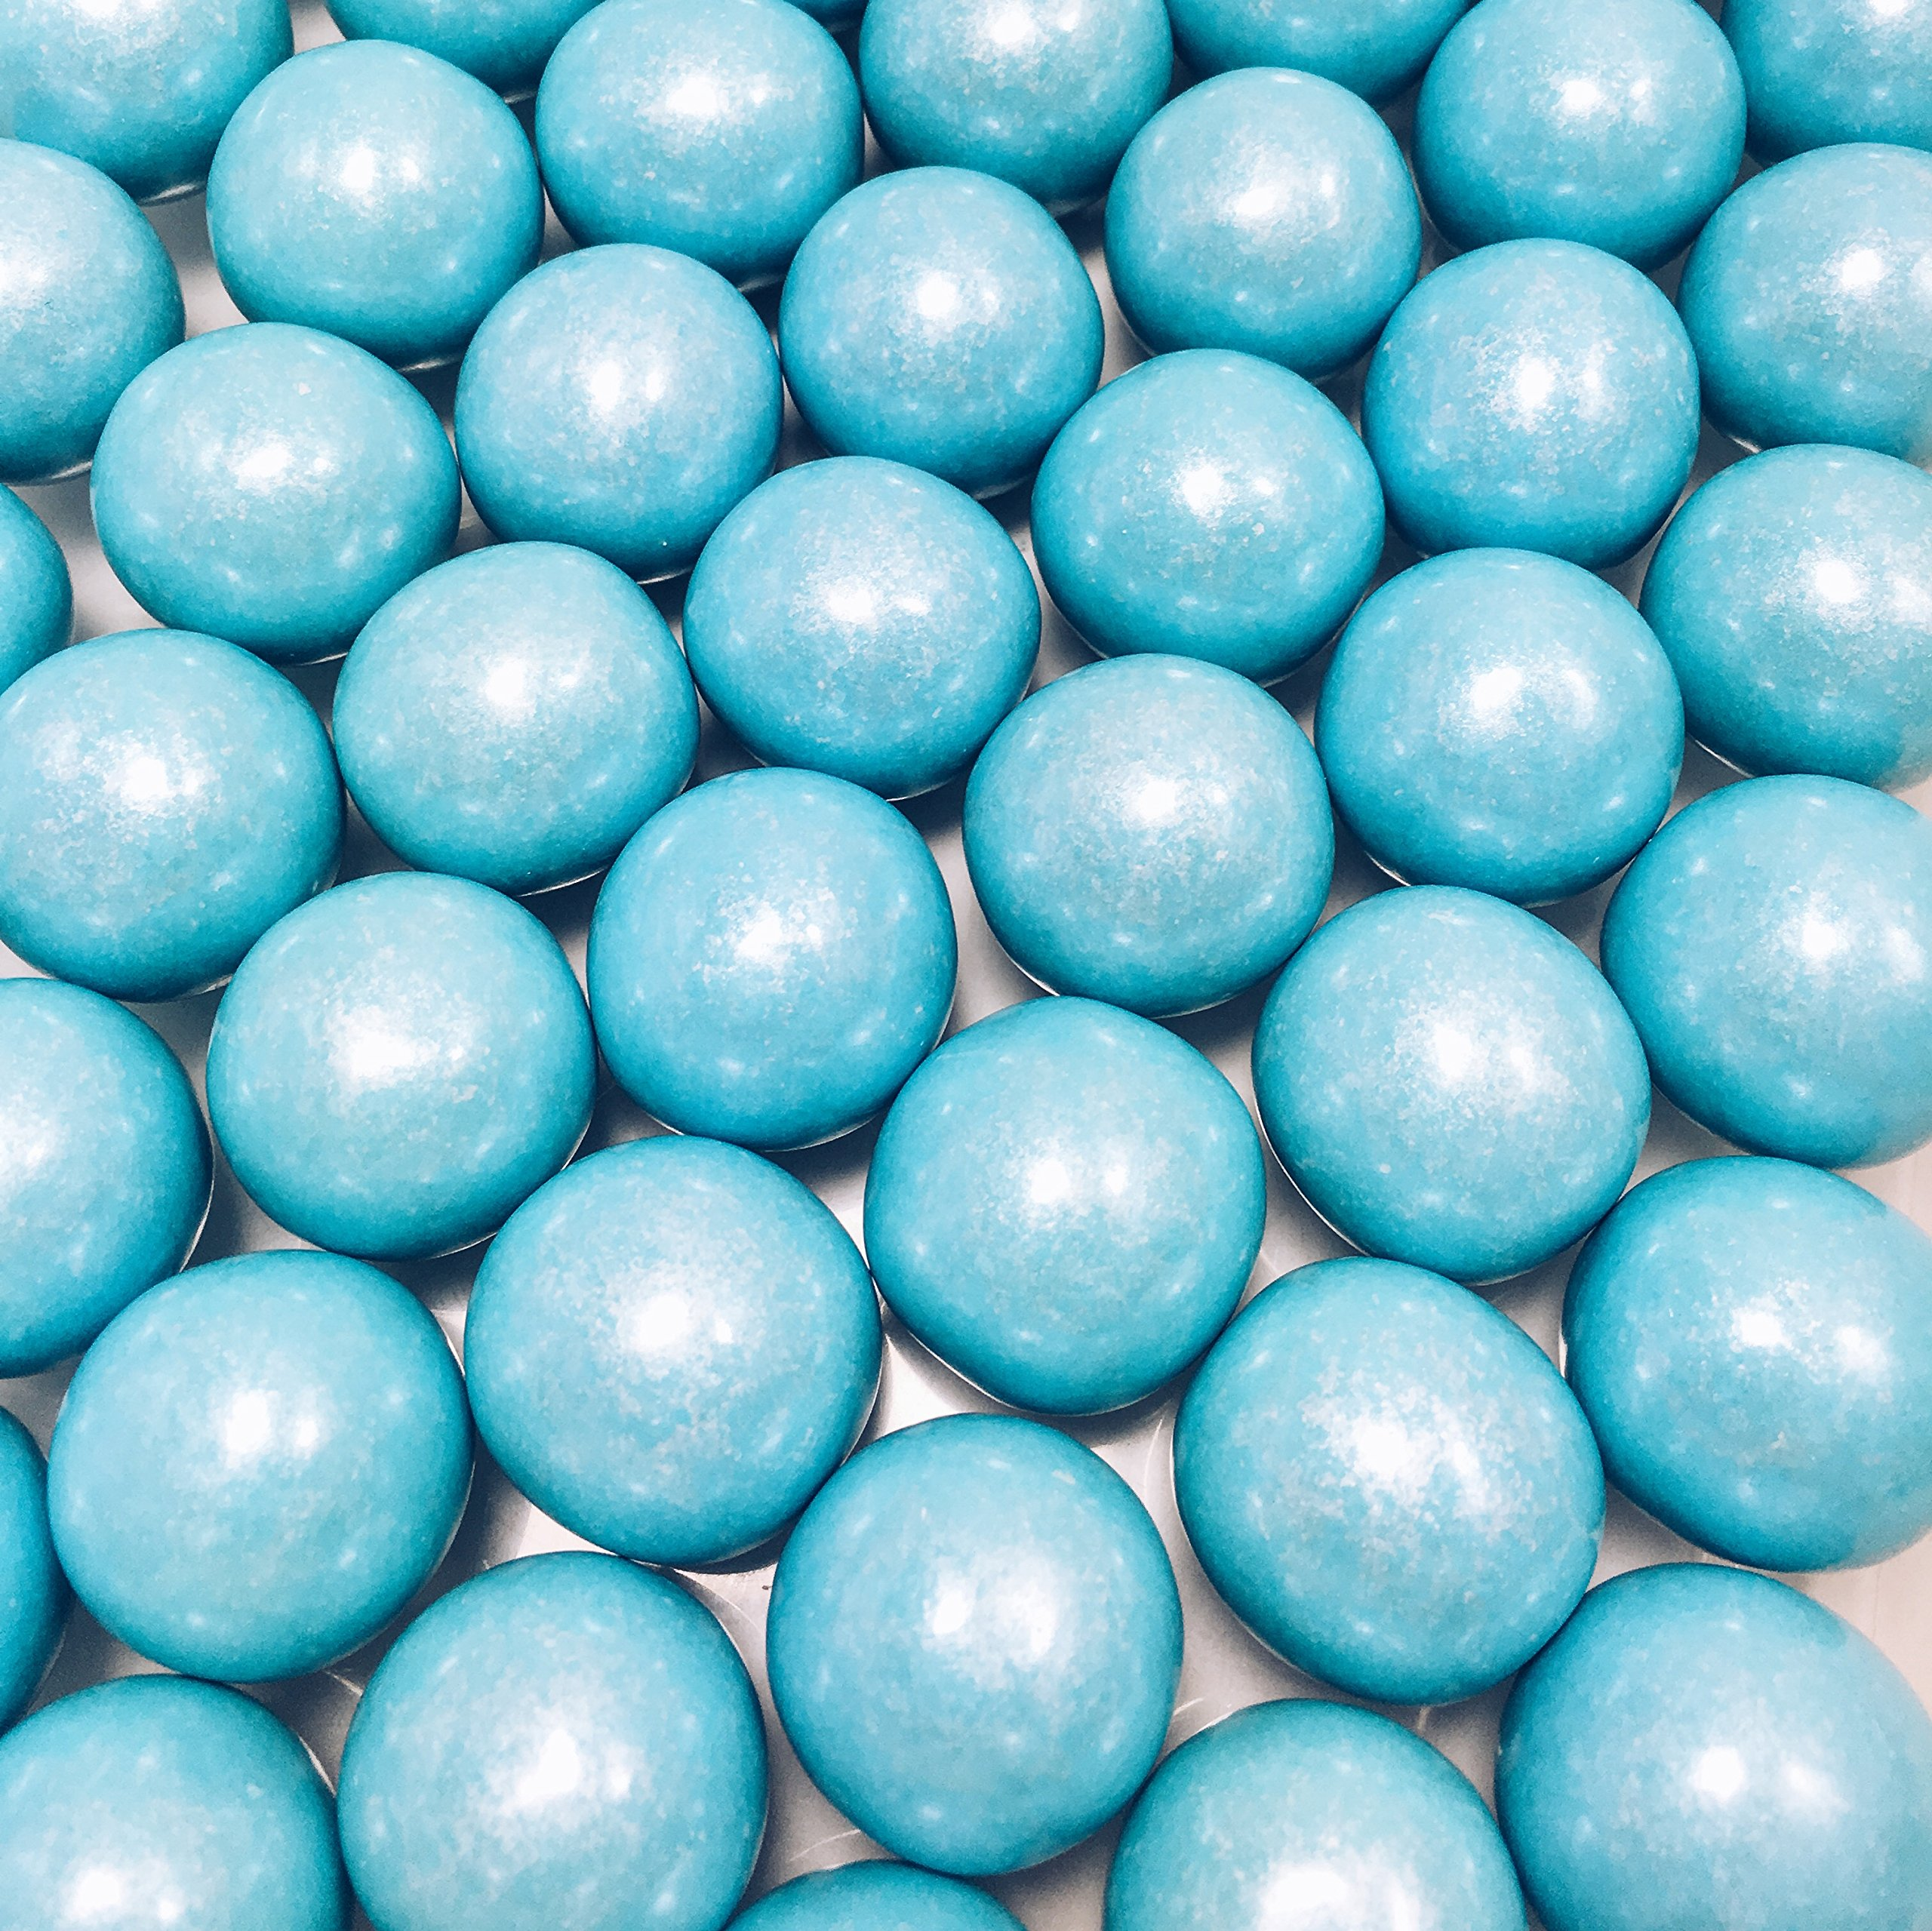 Large 1 Light Blue Shimmer Gumballs - 2 Pound Bags - About 120 Gumballs Per Bag - Includes How to Build a Candy Buffet Guide